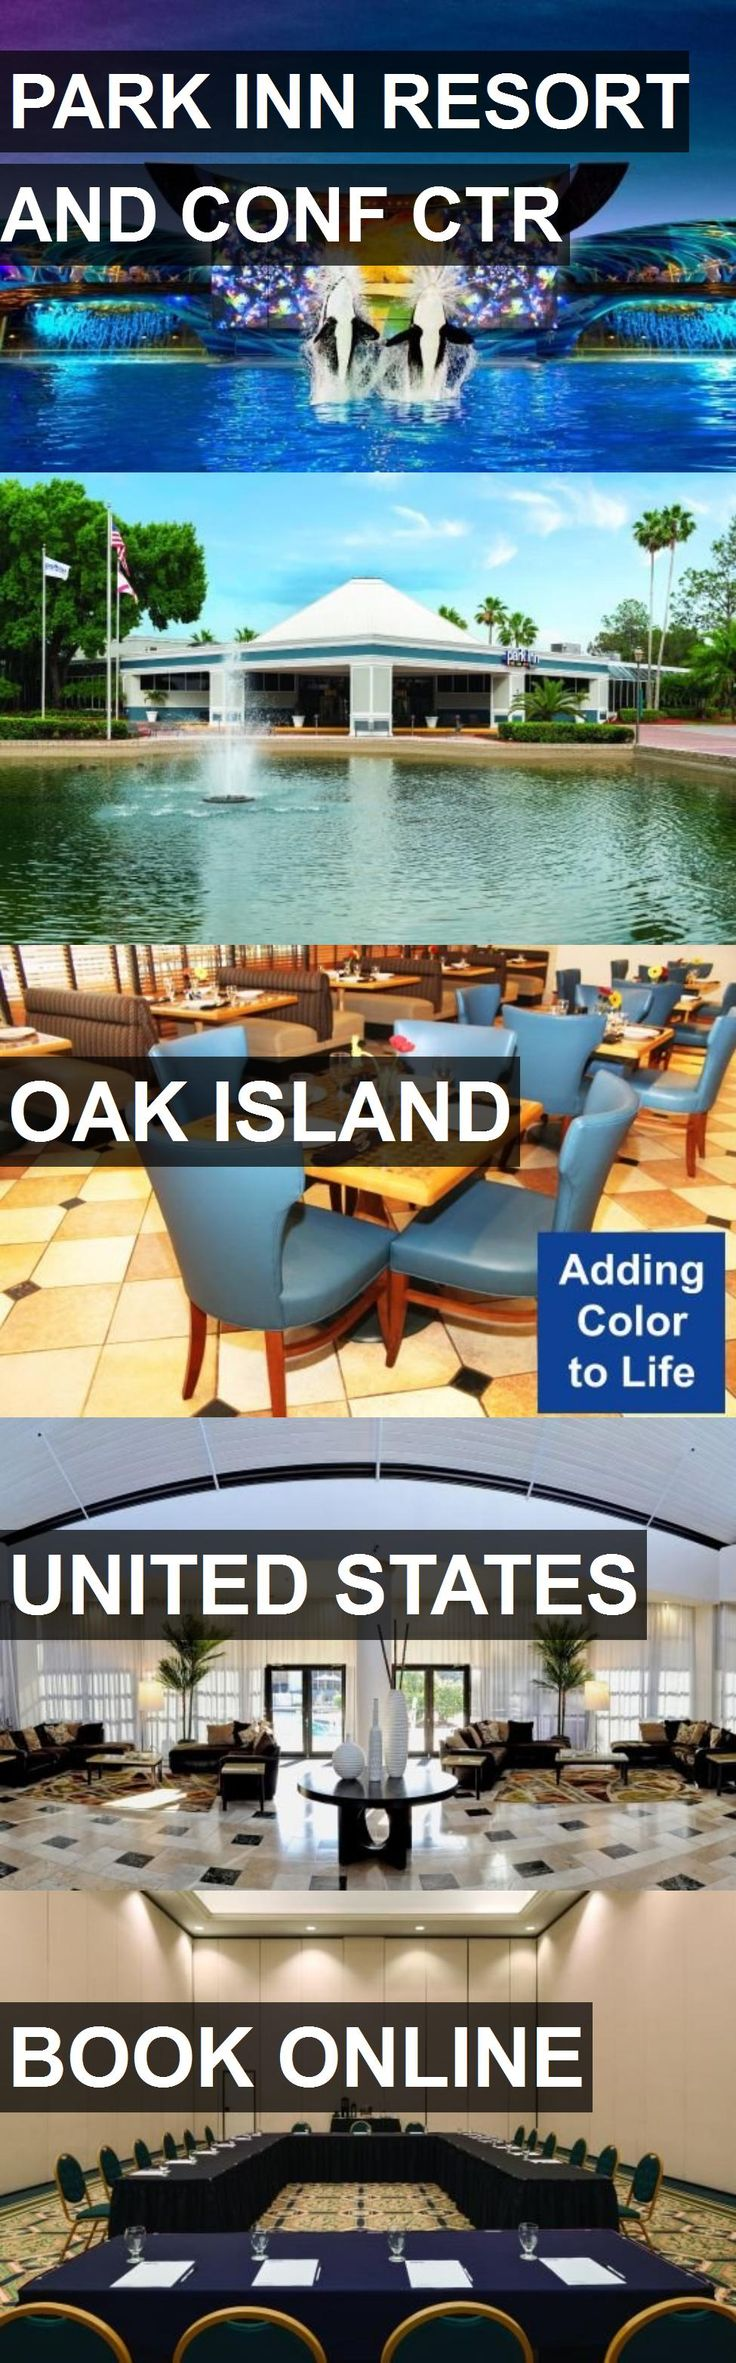 Hotel PARK INN RESORT AND CONF CTR in Oak Island, United States. For more information, photos, reviews and best prices please follow the link. #UnitedStates #OakIsland #PARKINNRESORTANDCONFCTR #hotel #travel #vacation